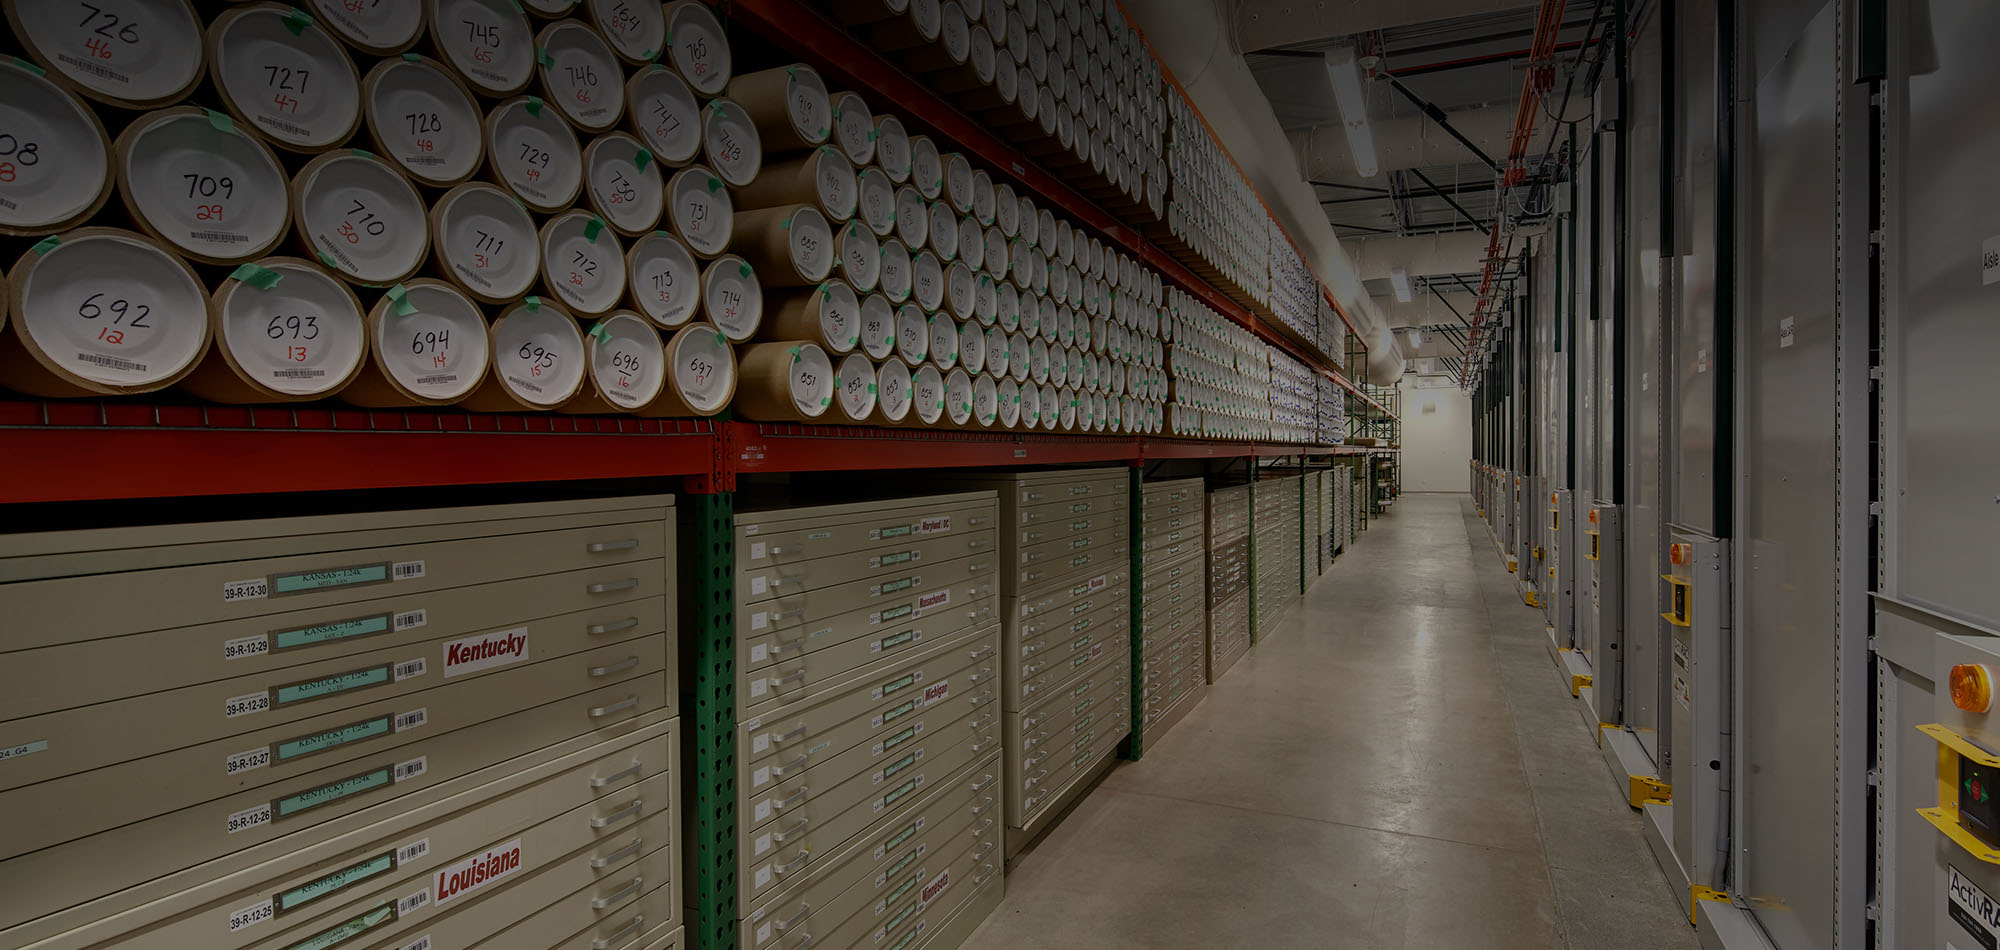 Syracuse University's High-Density Library Storage Facility